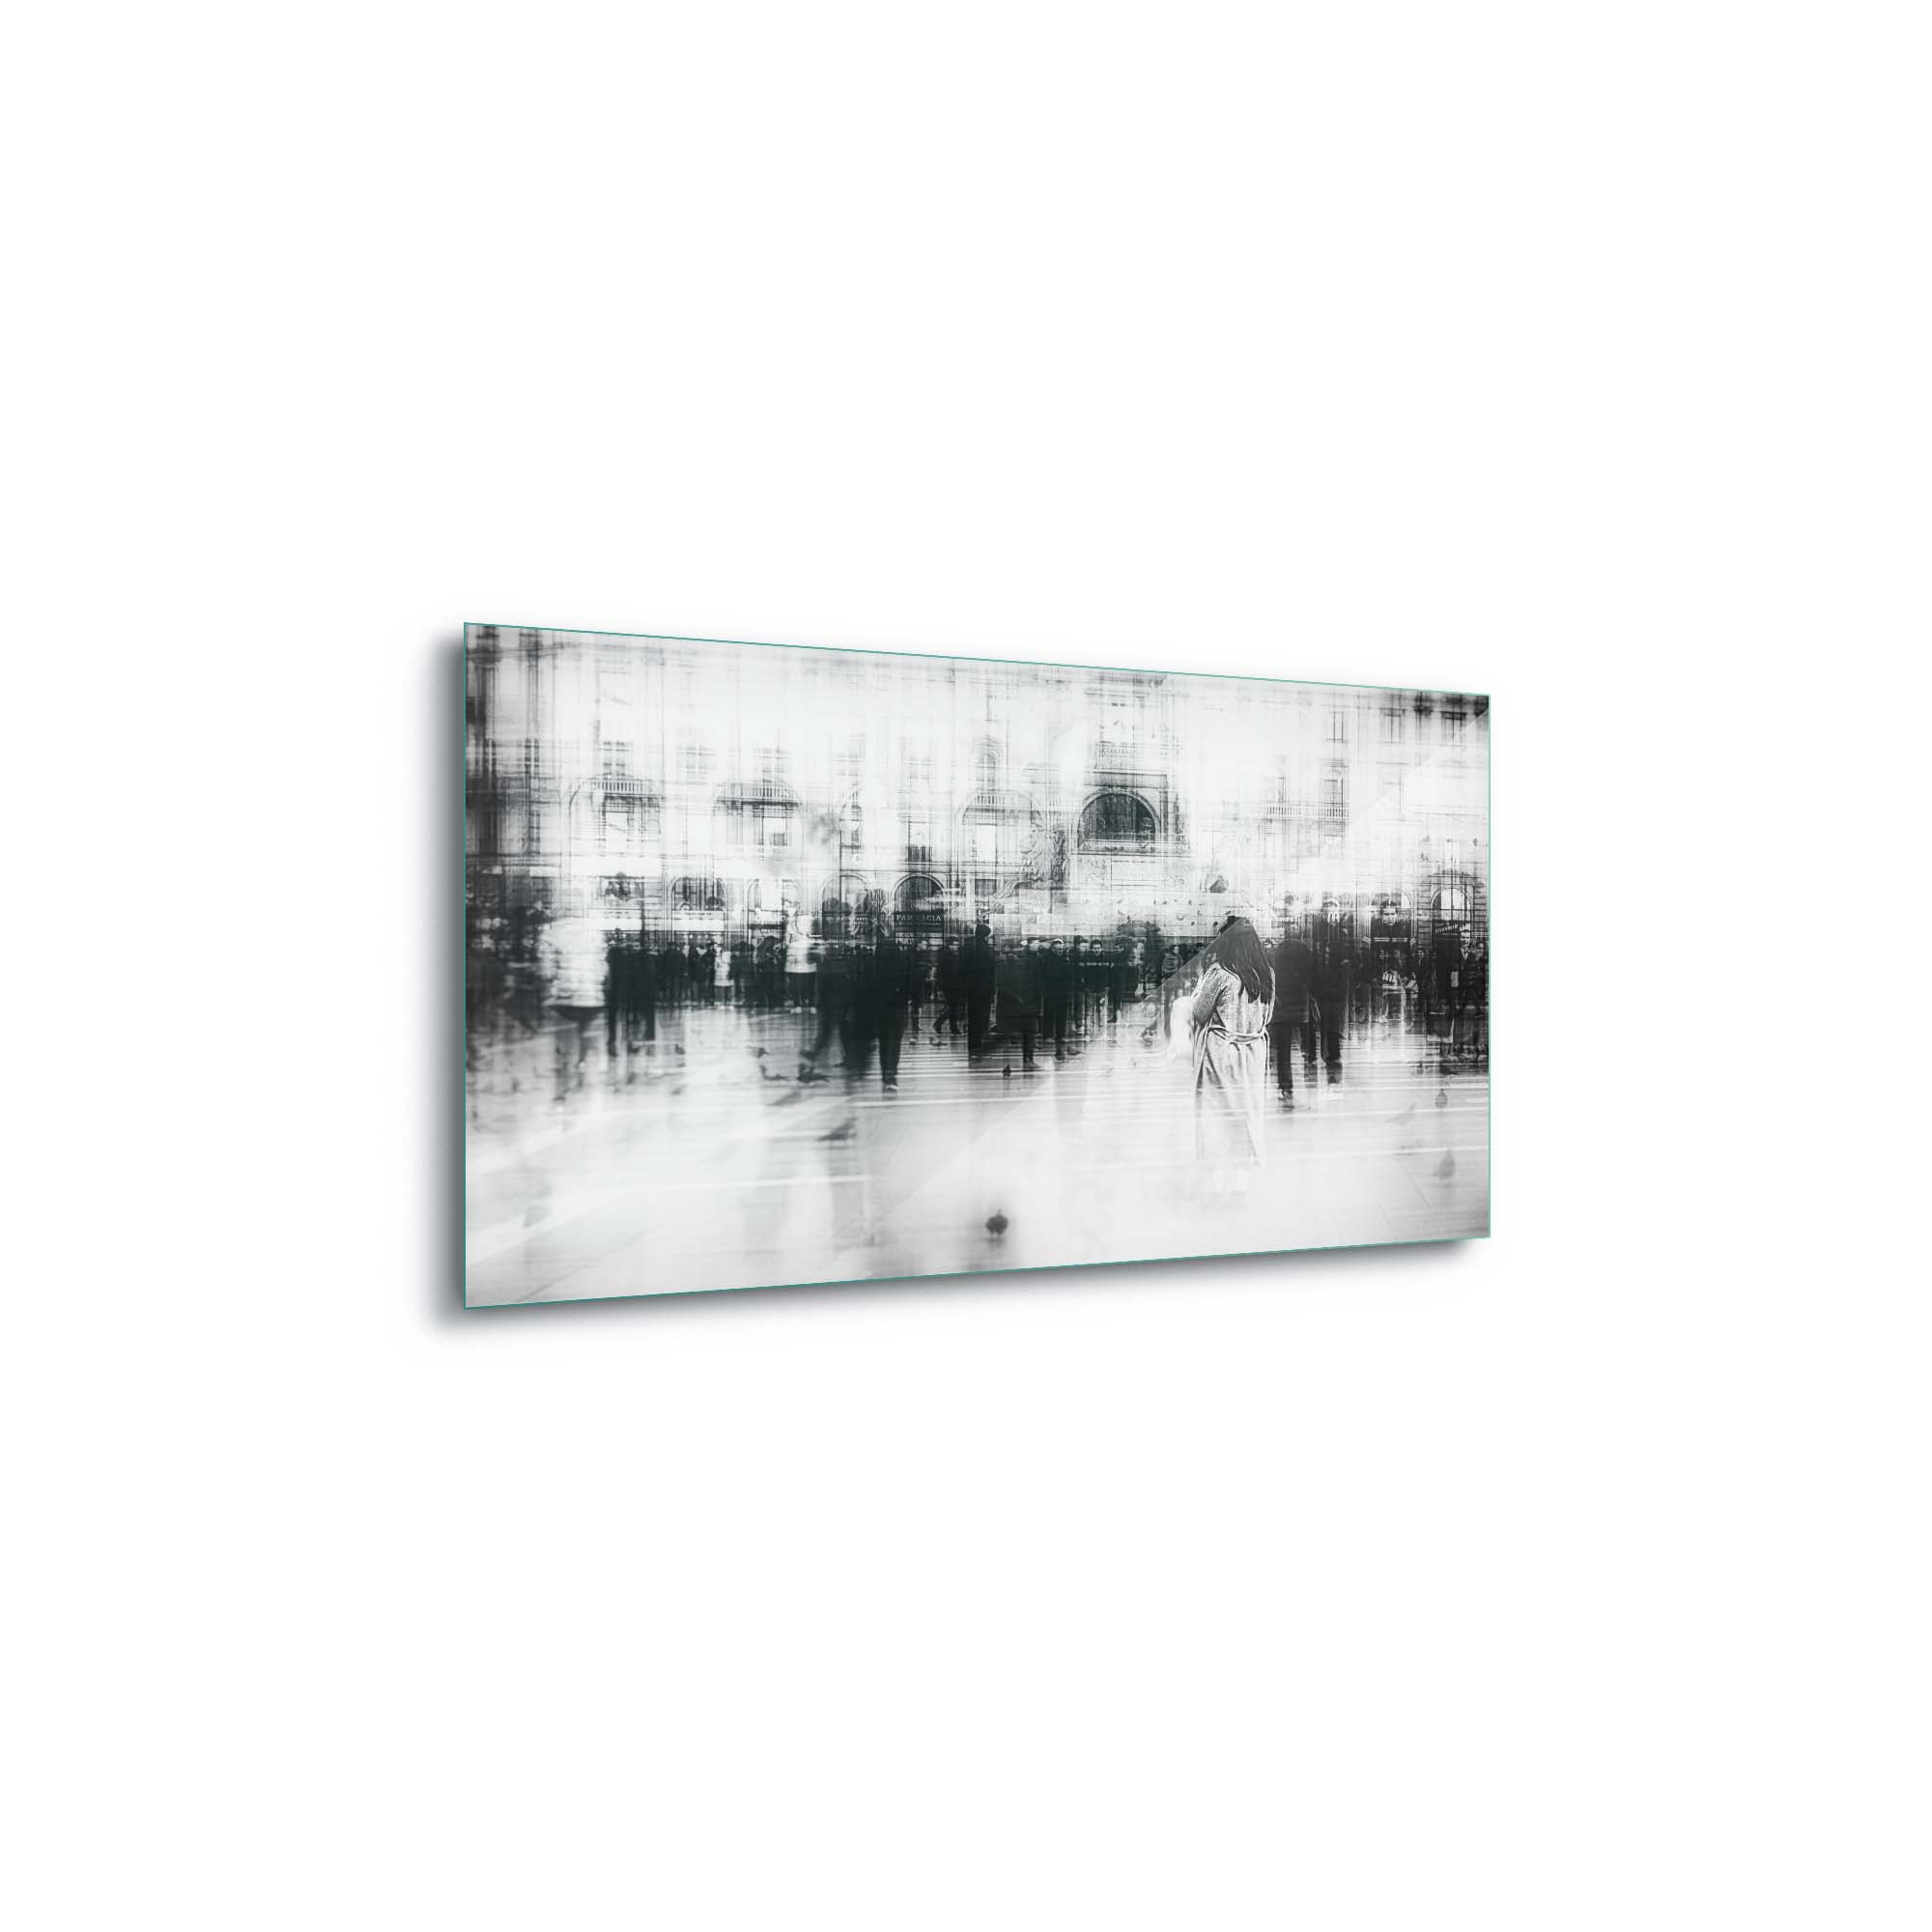 Glass printed Women Facing People in a City